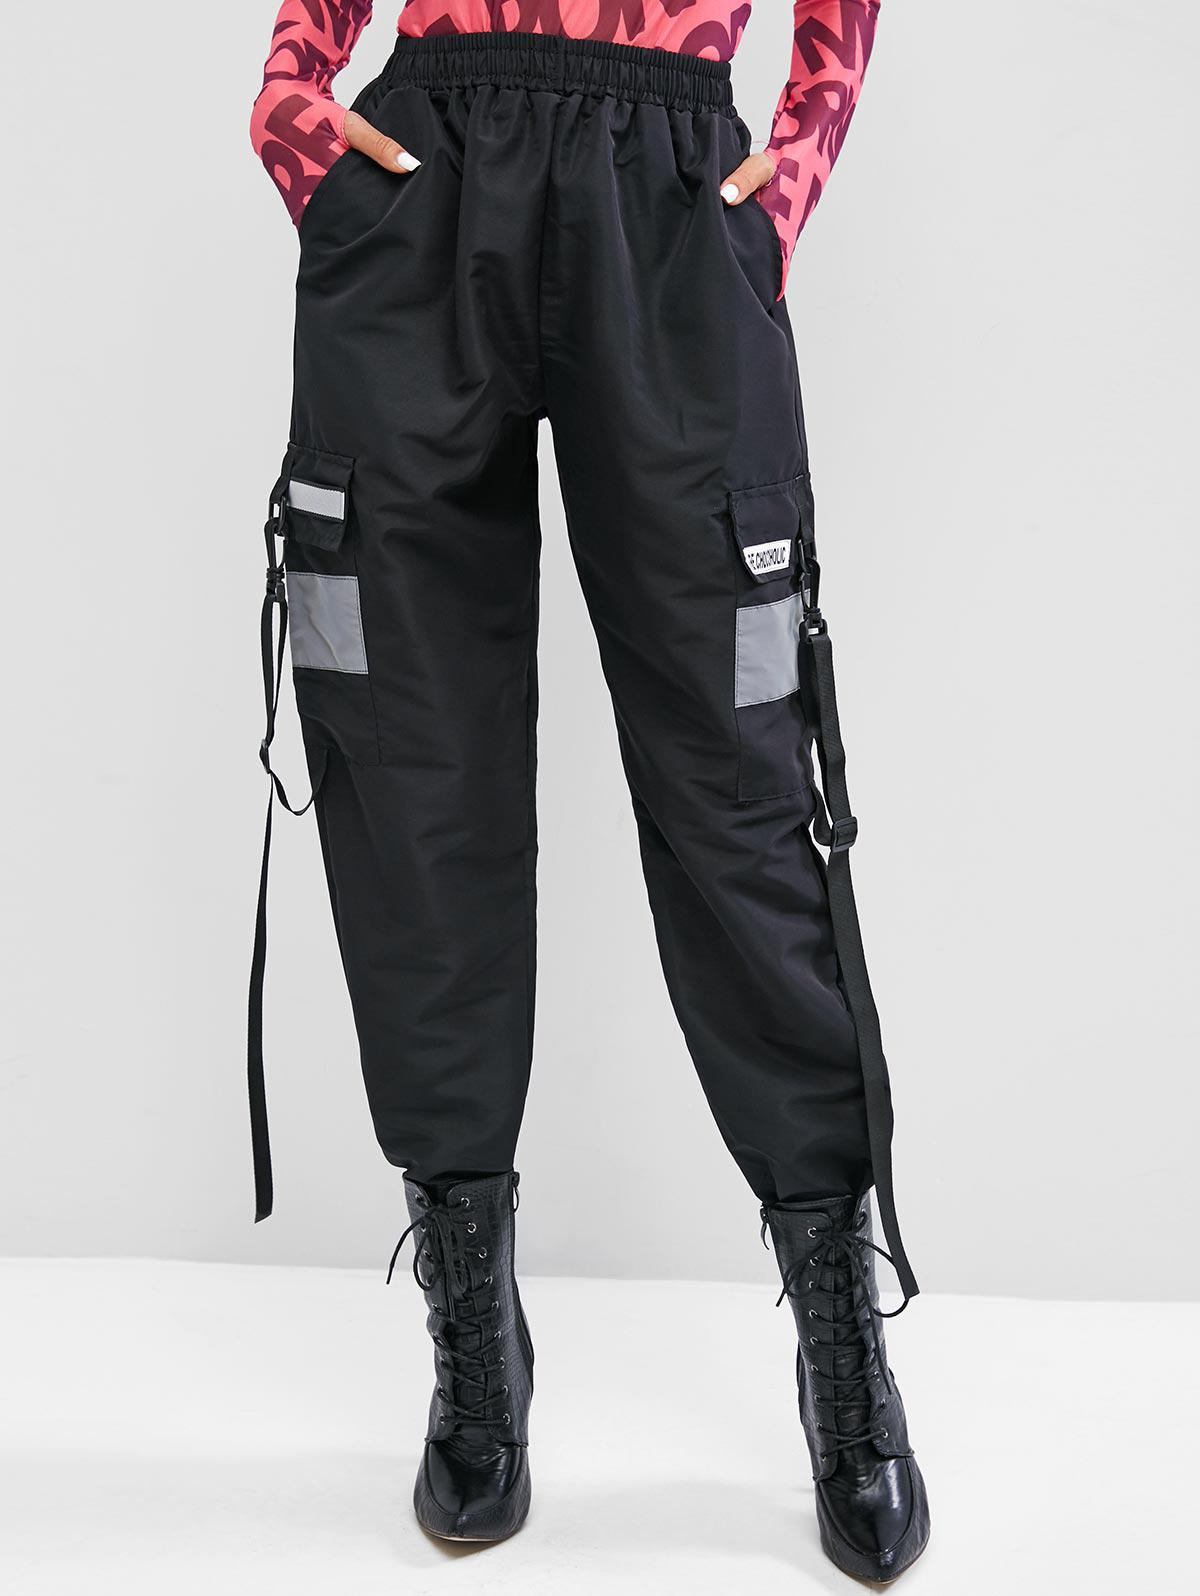 Graphic Snap Hook Buckle Straps Cargo Pants